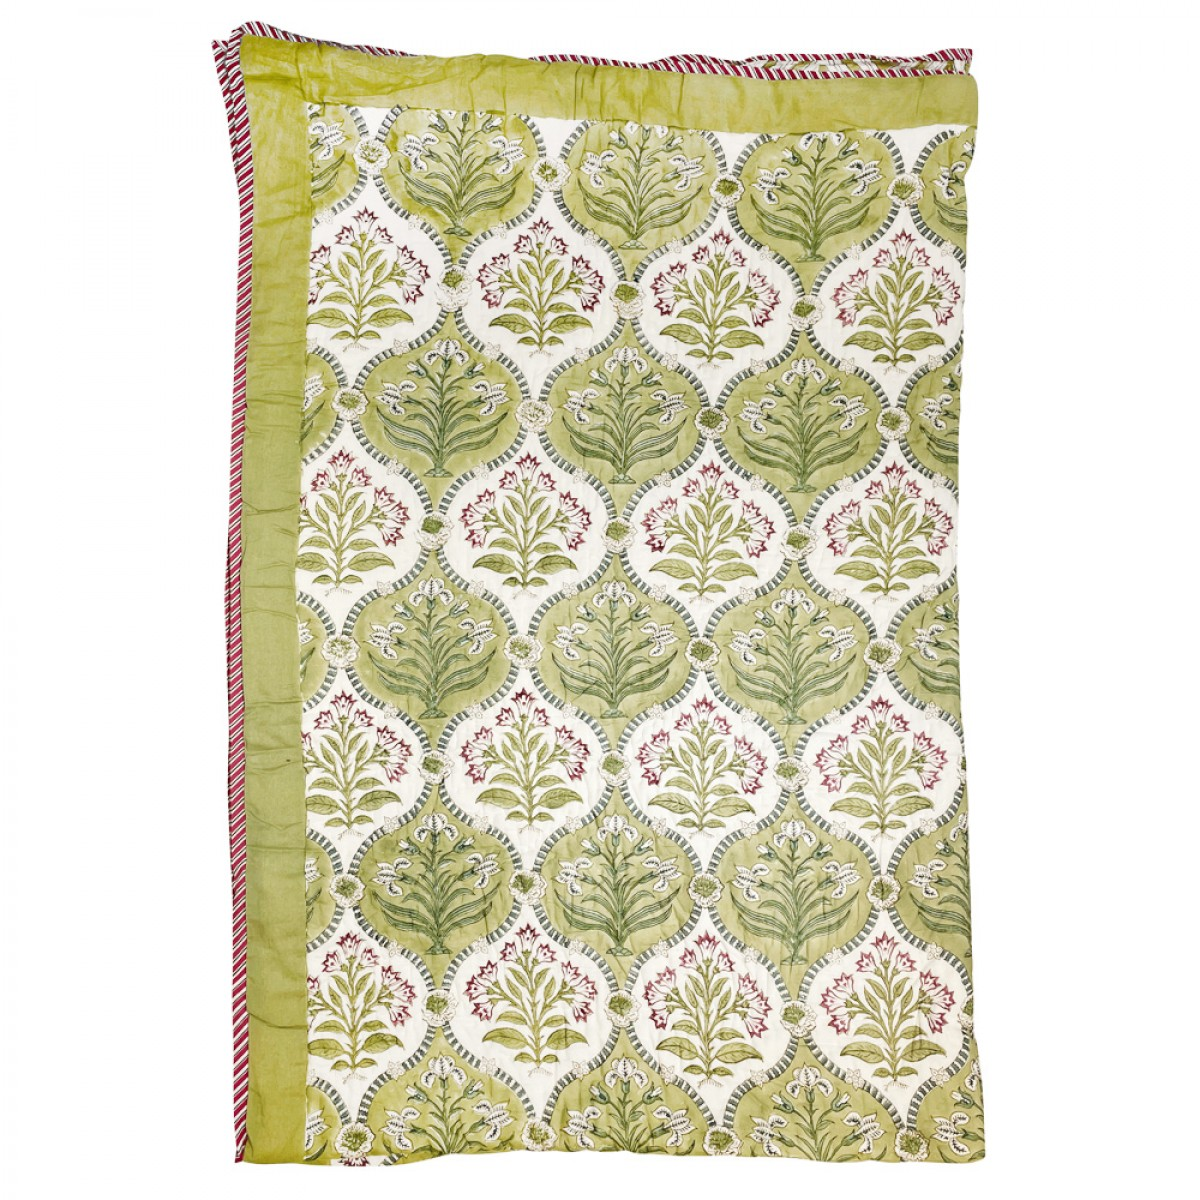 100% Cotton Block Printed Single Size Quilts - Garden Green